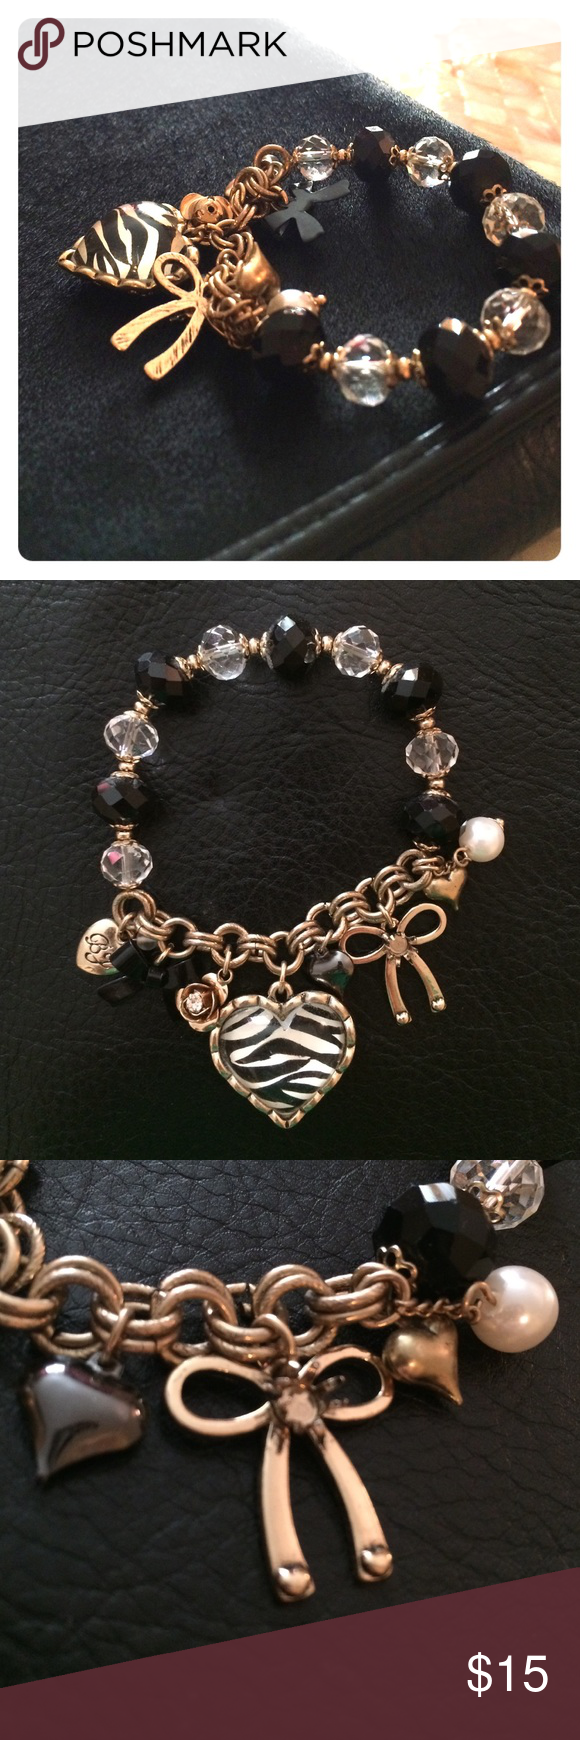 Betsy Johnson Charm Bracelet Betsy Johnson gold-tone and black charm bracelet.  Stretches to fit over your hand.  The bow charm is missing it's stone (third picture).  The charms give the bracelet a nice little jingle on your wrist! Betsey Johnson Jewelry Bracelets